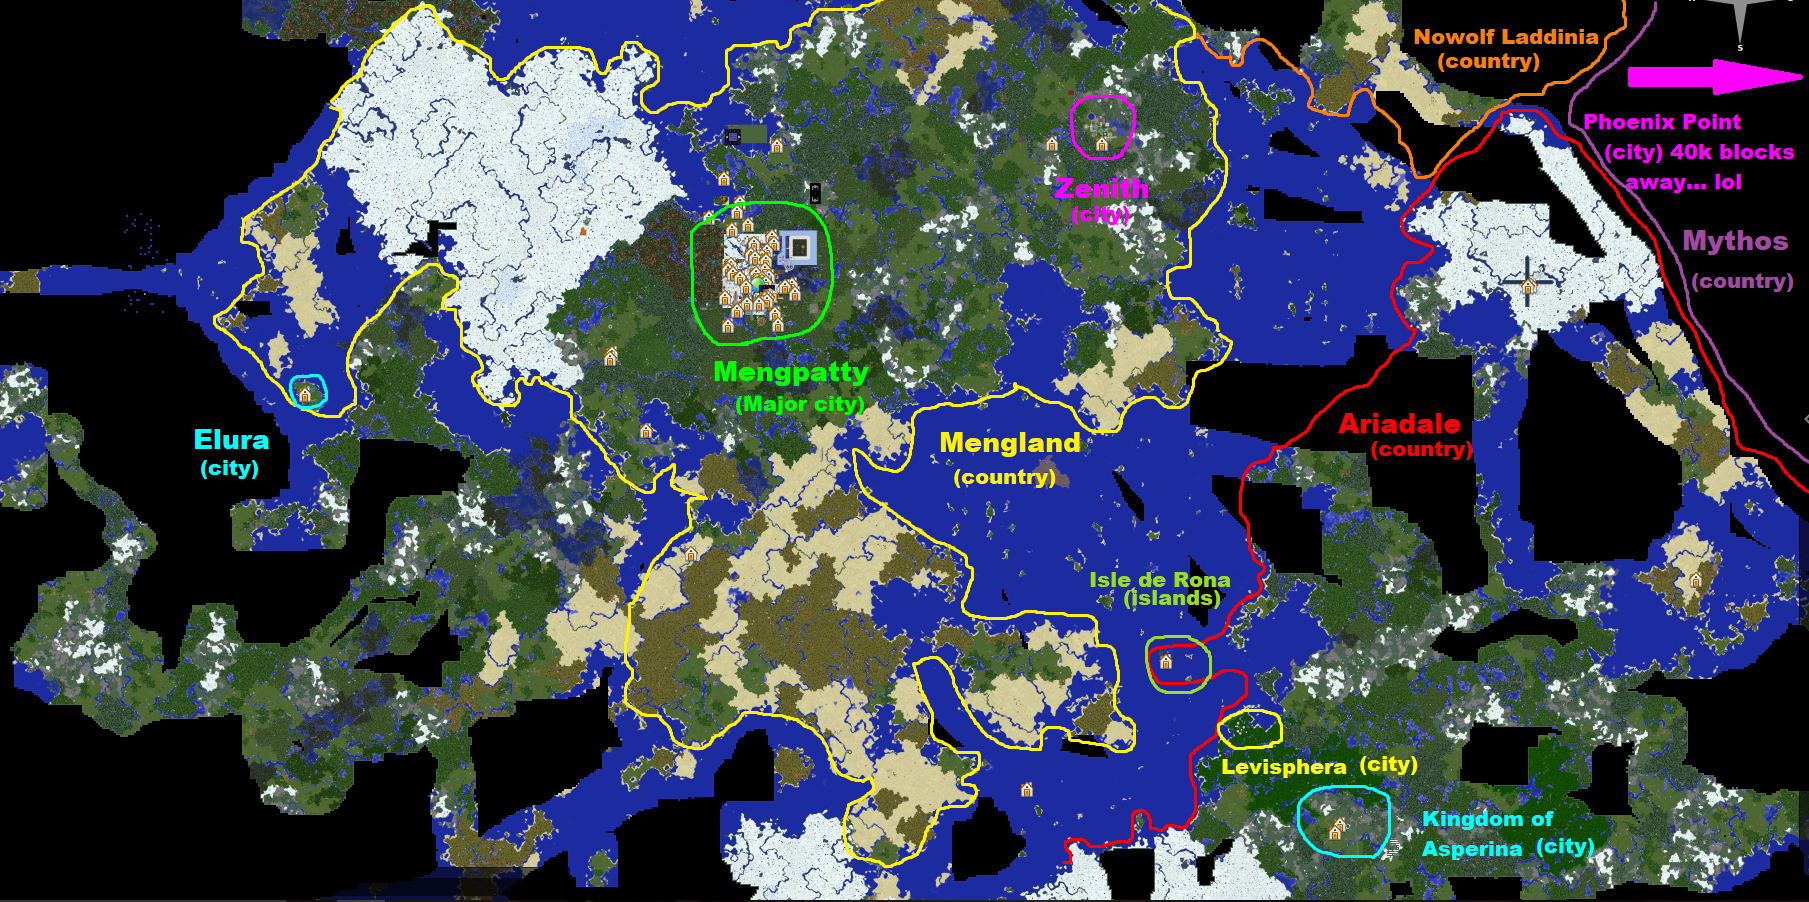 Regions of the world map bowlingotter show minecraft server wiki retrieved from httpbowlingotter show minecraft serverawikiregionsoftheworldmapoldid522 gumiabroncs Images